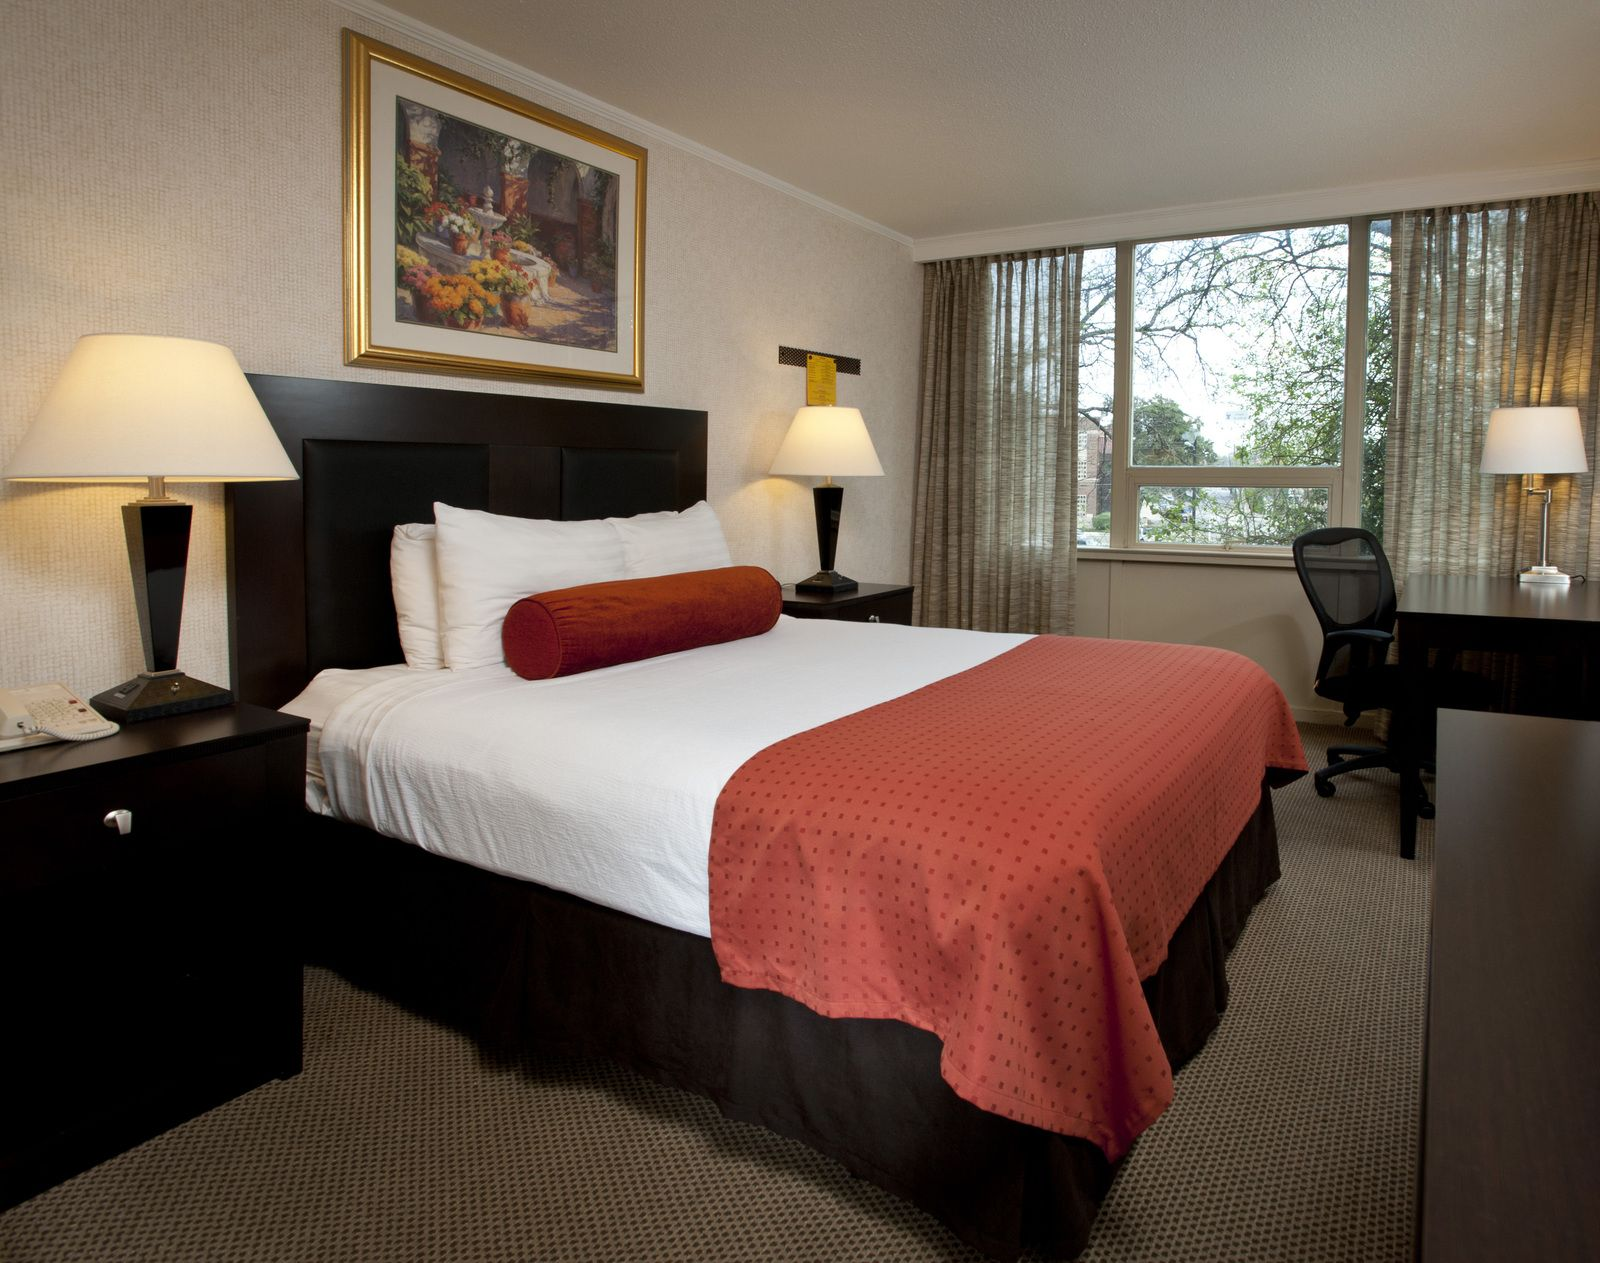 Your Hotel Your Room Your Sanantonio Experience We Have Variety Of Room Choices Avail Riverwalk Hotels San Antonio Riverwalk Hotels Downtown San Antonio